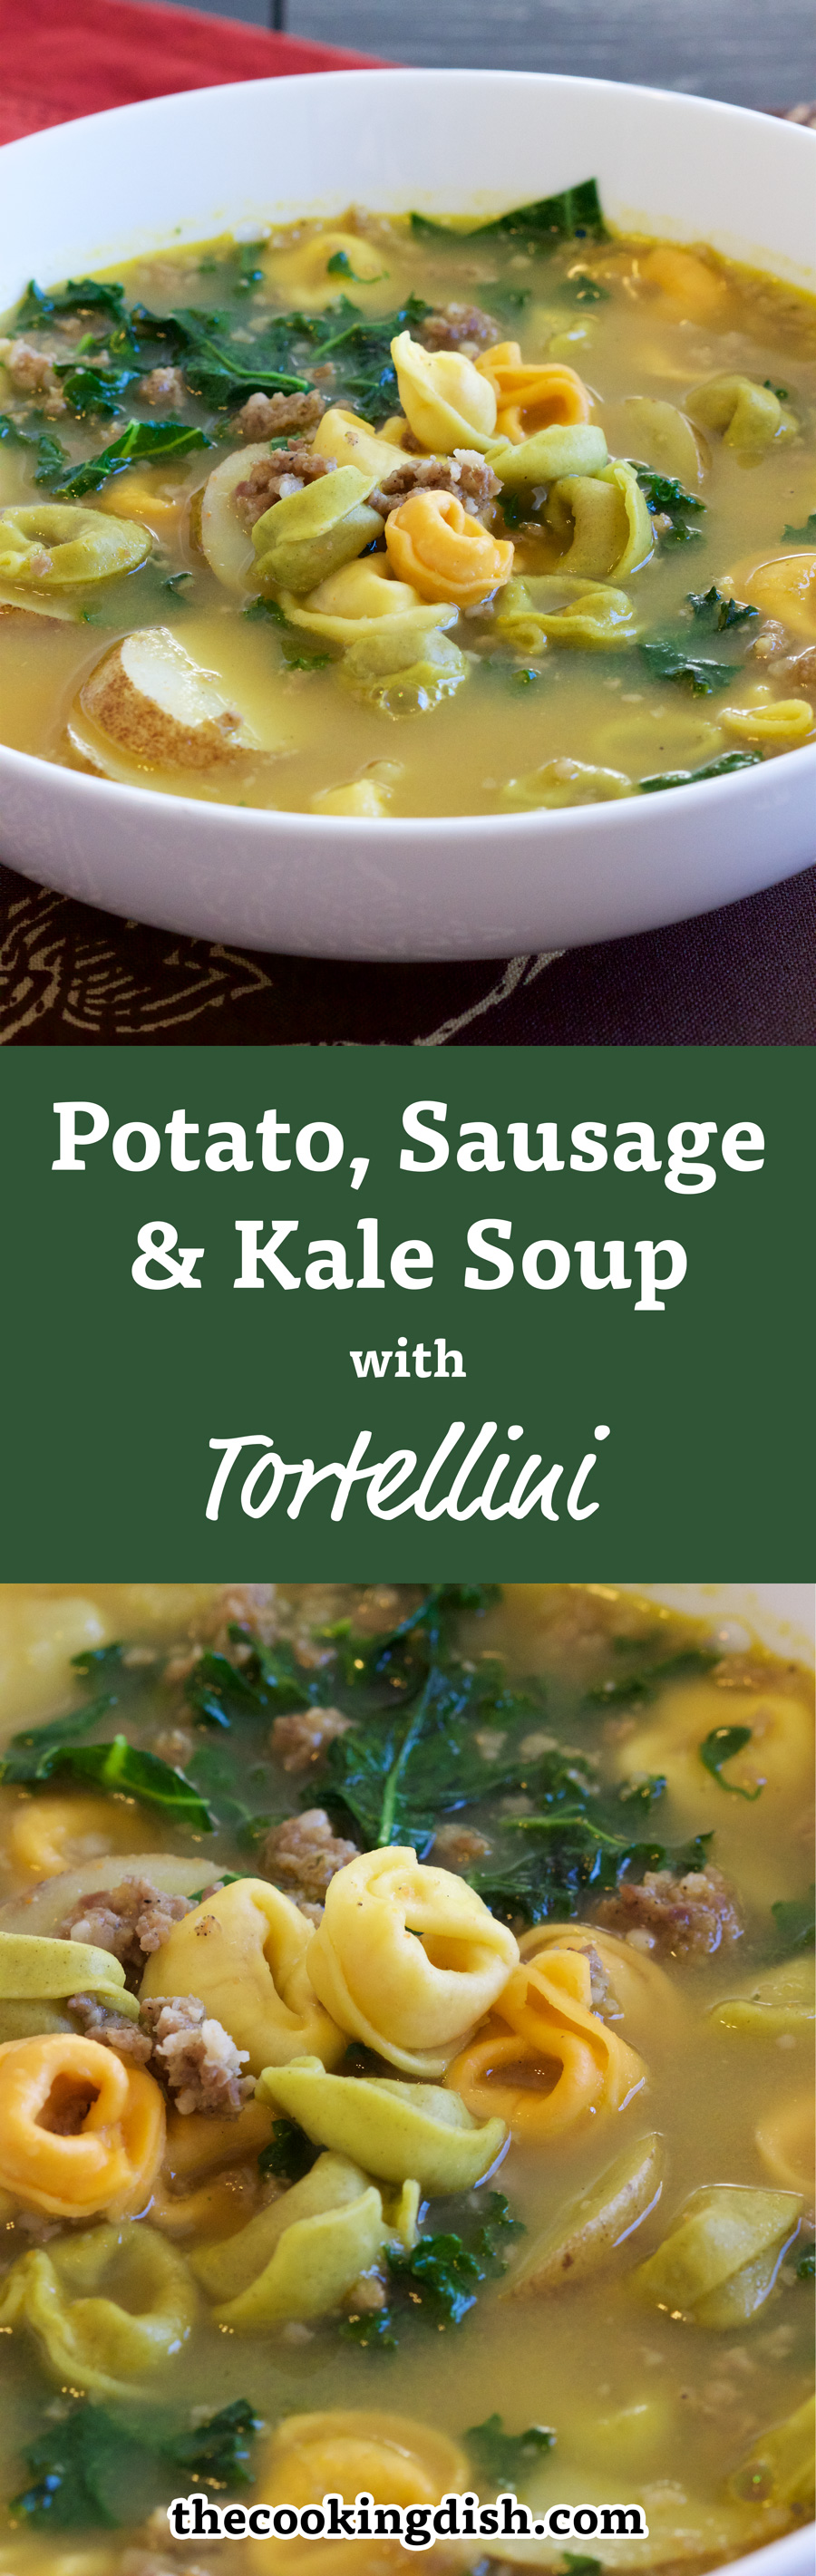 Have you tried this? Sausage, Potato, Kale Soup with Tortellini is perfect for winter. It keeps you warm and tastes so good. Enough for leftovers or lunches.